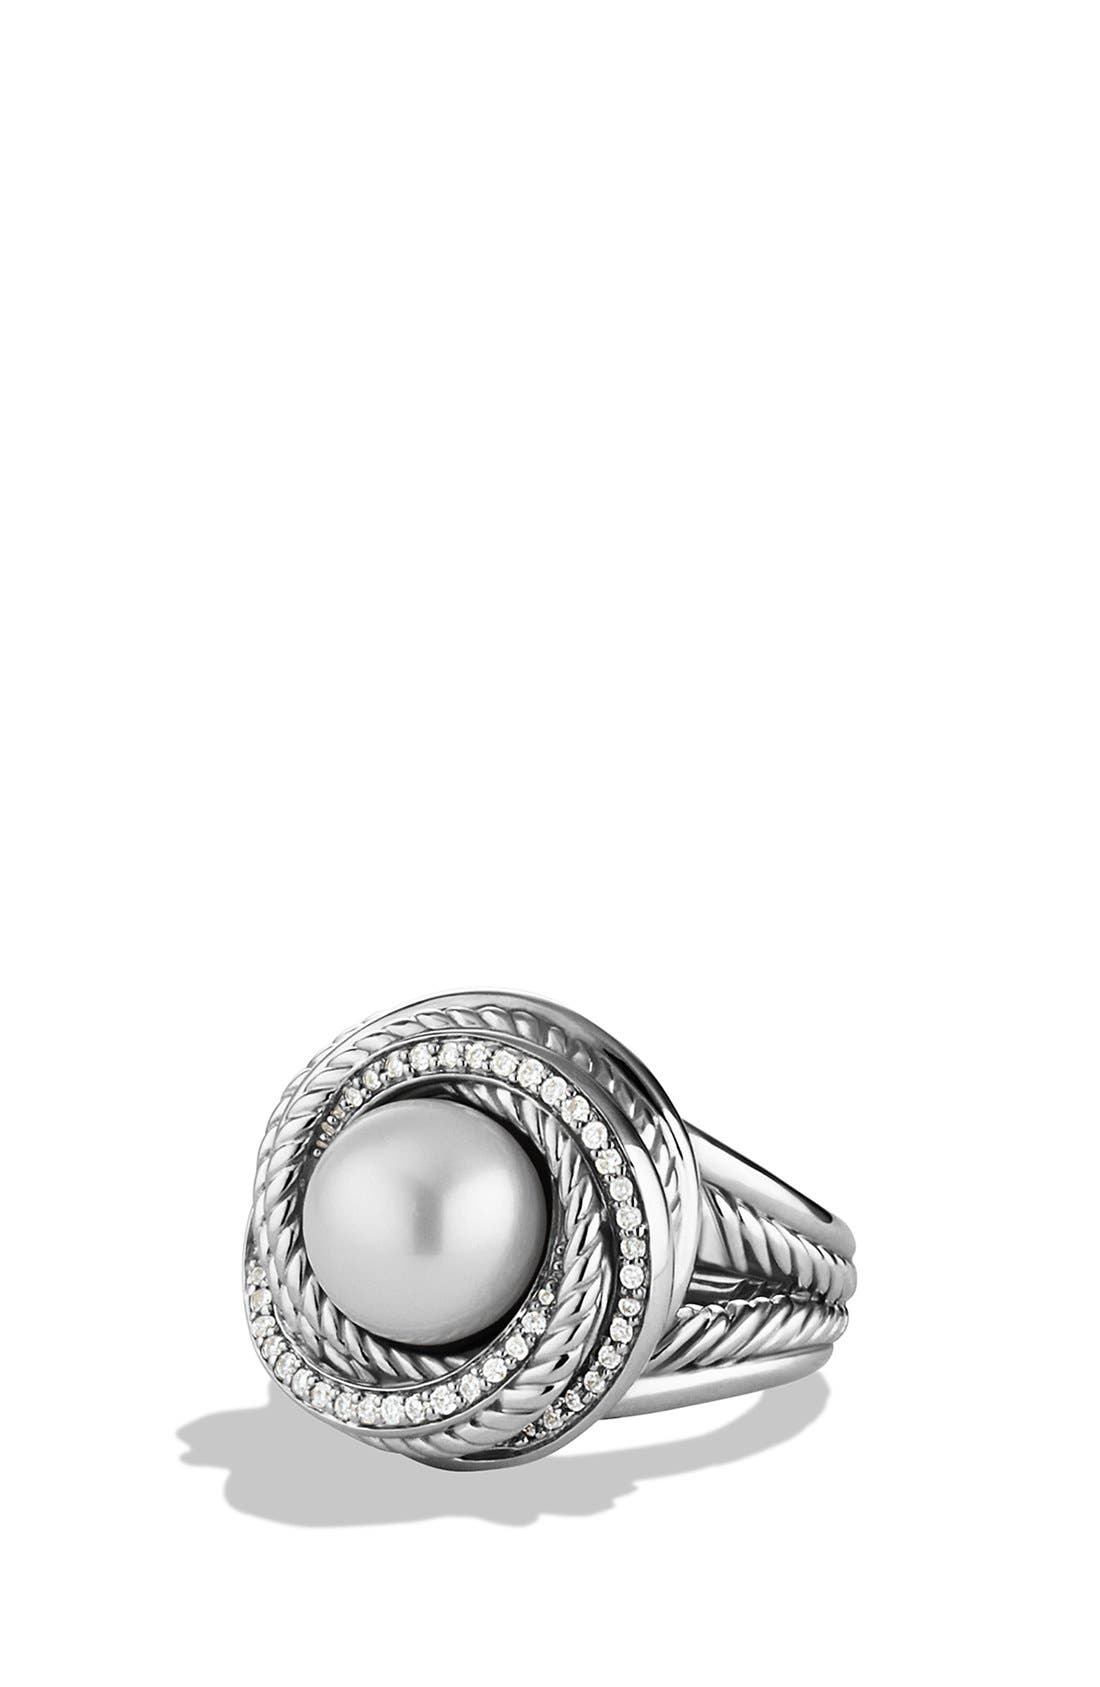 'Pearl Crossover' Ring with Diamonds,                             Main thumbnail 1, color,                             Pearl